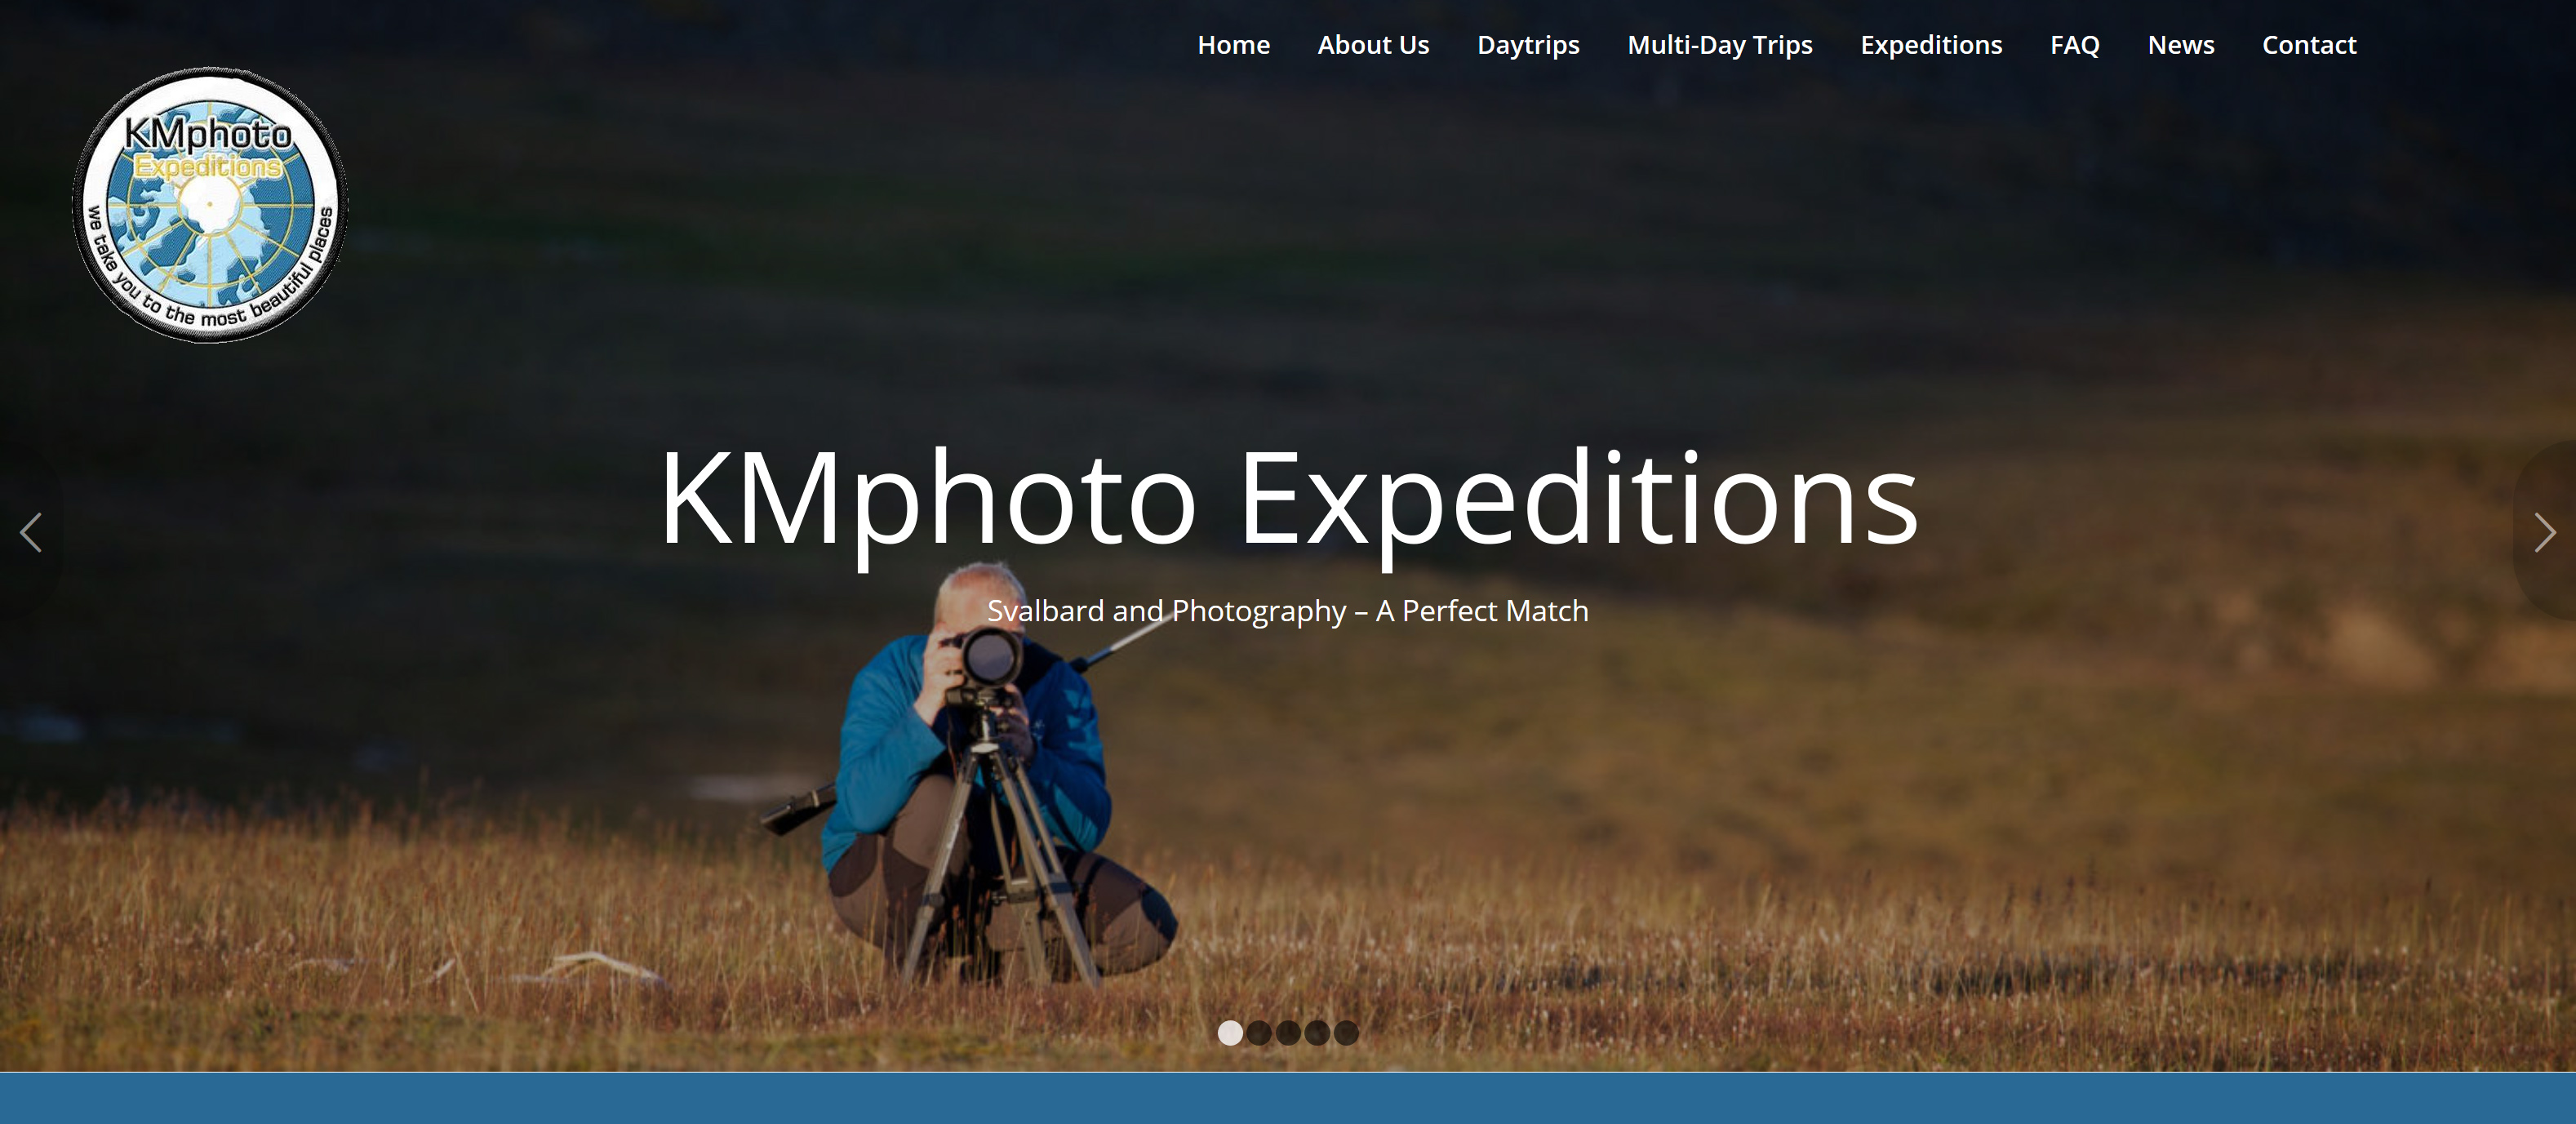 kmphoto-expeditions-web